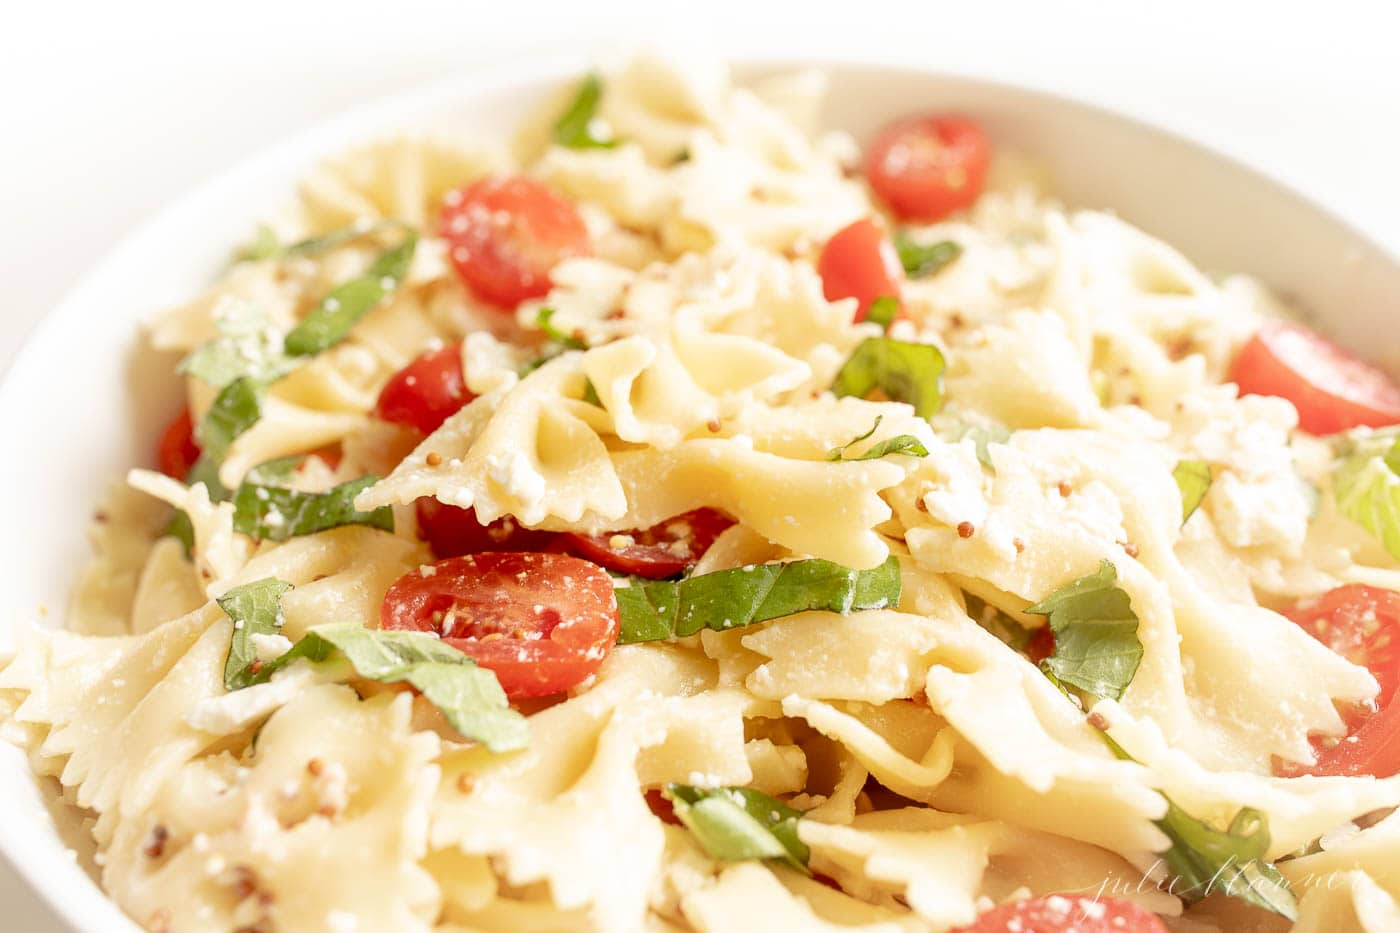 bow tie pasta salad with lemon vinaigrette basil and cherry tomatoes